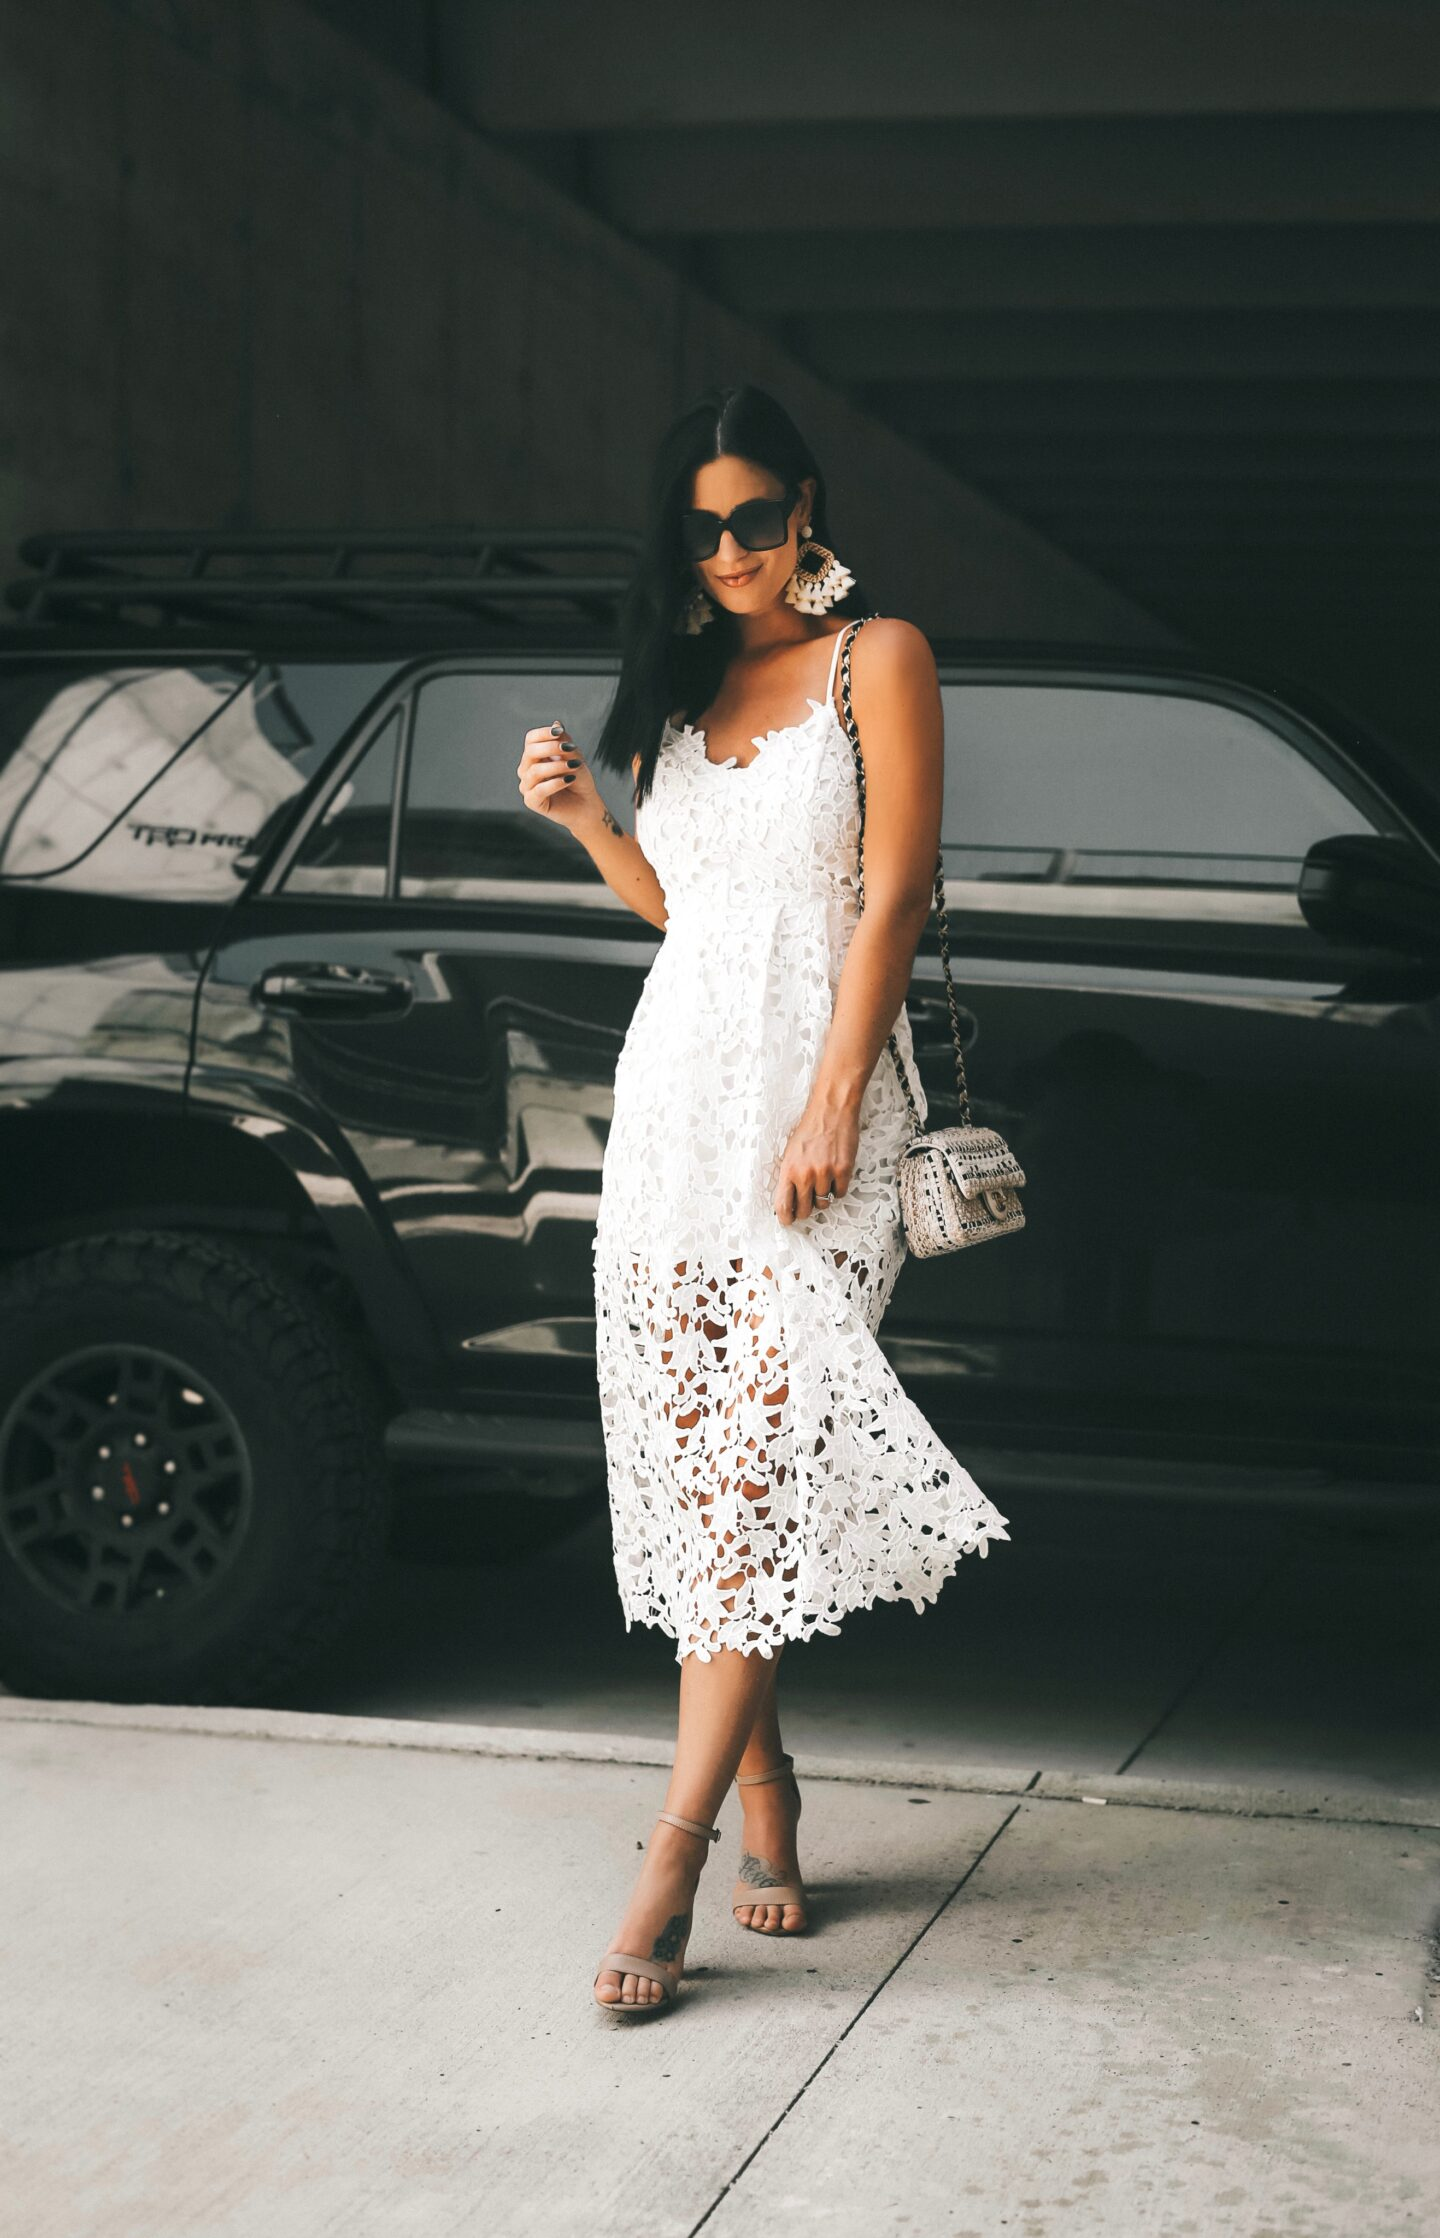 Online Discount Codes by popular Austin life and style blog, Dressed to Kill: image of a woman standing in a parking garage next to a black car and wearing a white lace strapless dress.